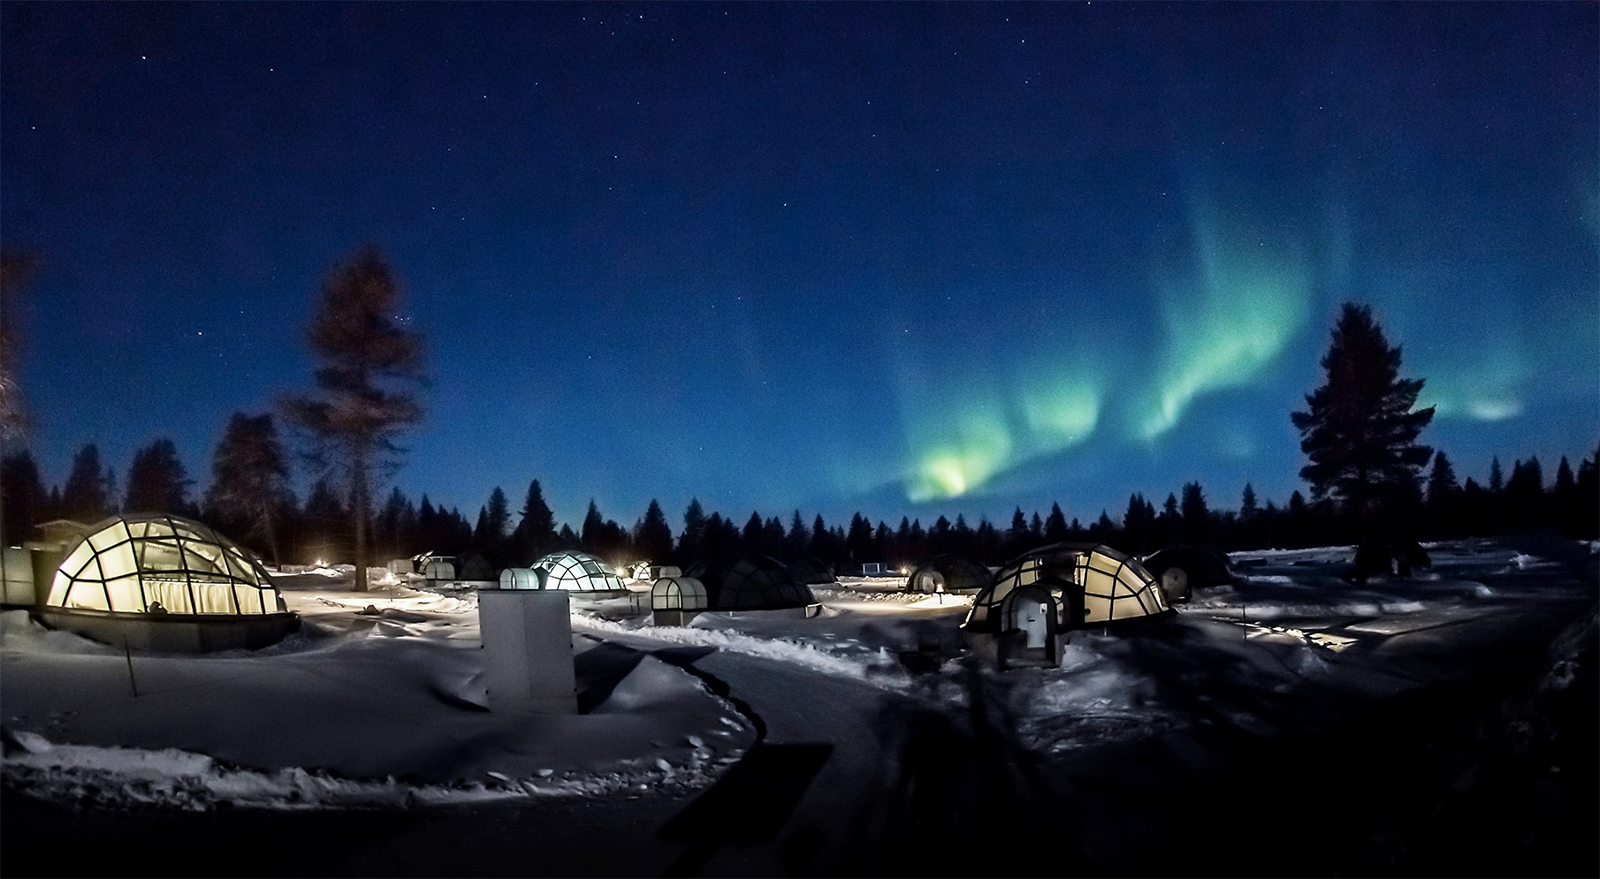 Kakslauttanen Arctic Resort - where you can watch the Northern Lights from your bed